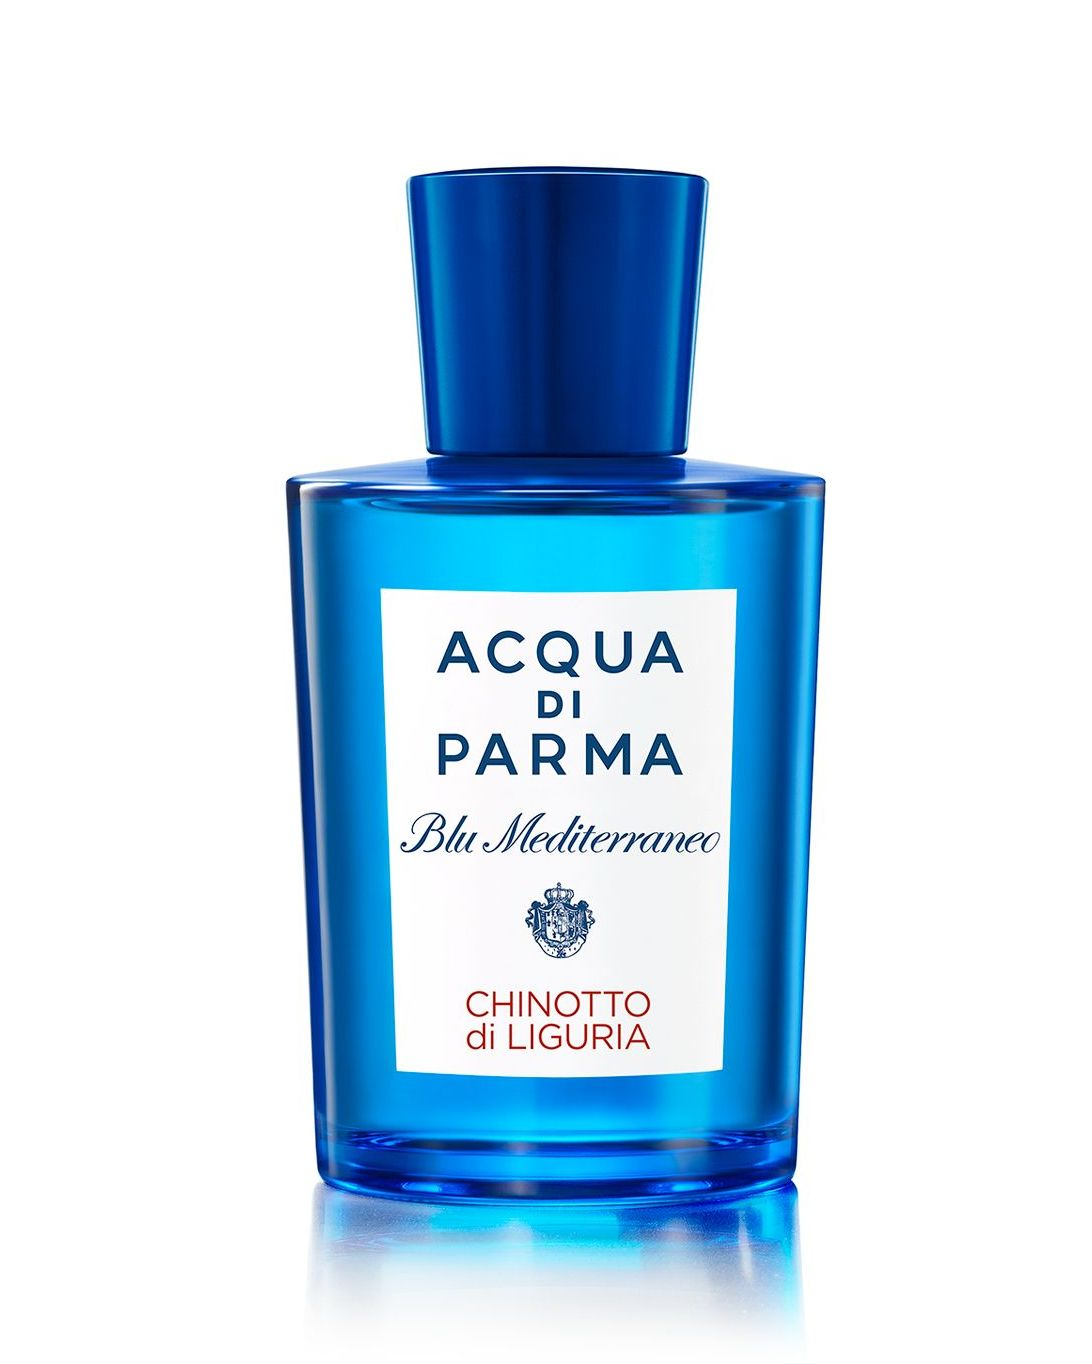 For the One Who Plans to Be On a Boat All Summer Blu Mediterraneo Chinotto di Liguria Eau de Toilette 5 oz. Acqua di Parma bloomingdales.com $171.00 SHOP NOW Even if you're not lucky enough to have a trip booked to Italy this summer, your seafaring spirit can thrive with a bottle of this Acqua Di Parma scent inspired by the prima locale.